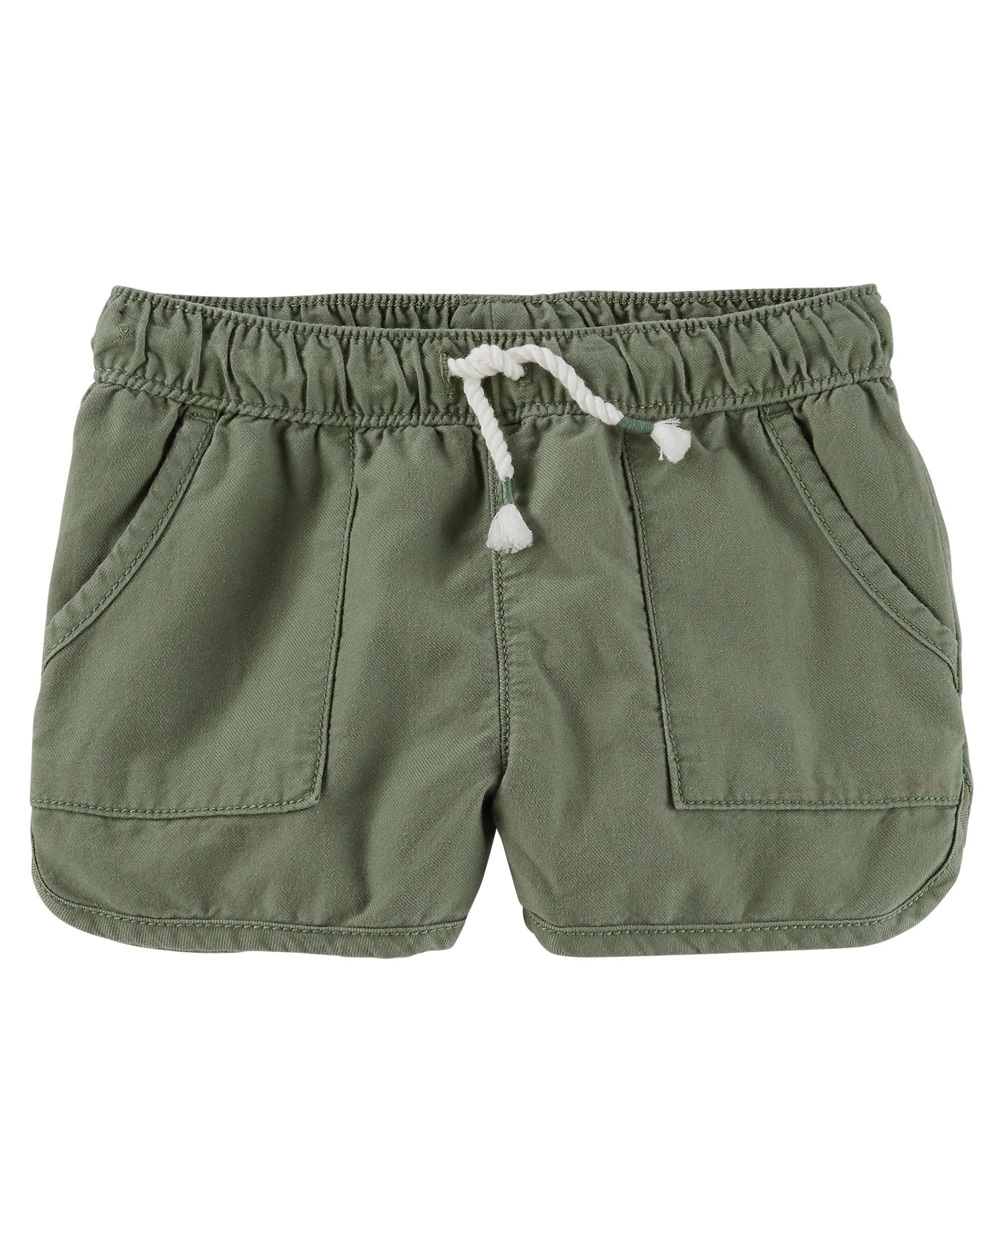 OshKosh B'gosh Baby Girls' Sun Short, Olive, 6-9 Months